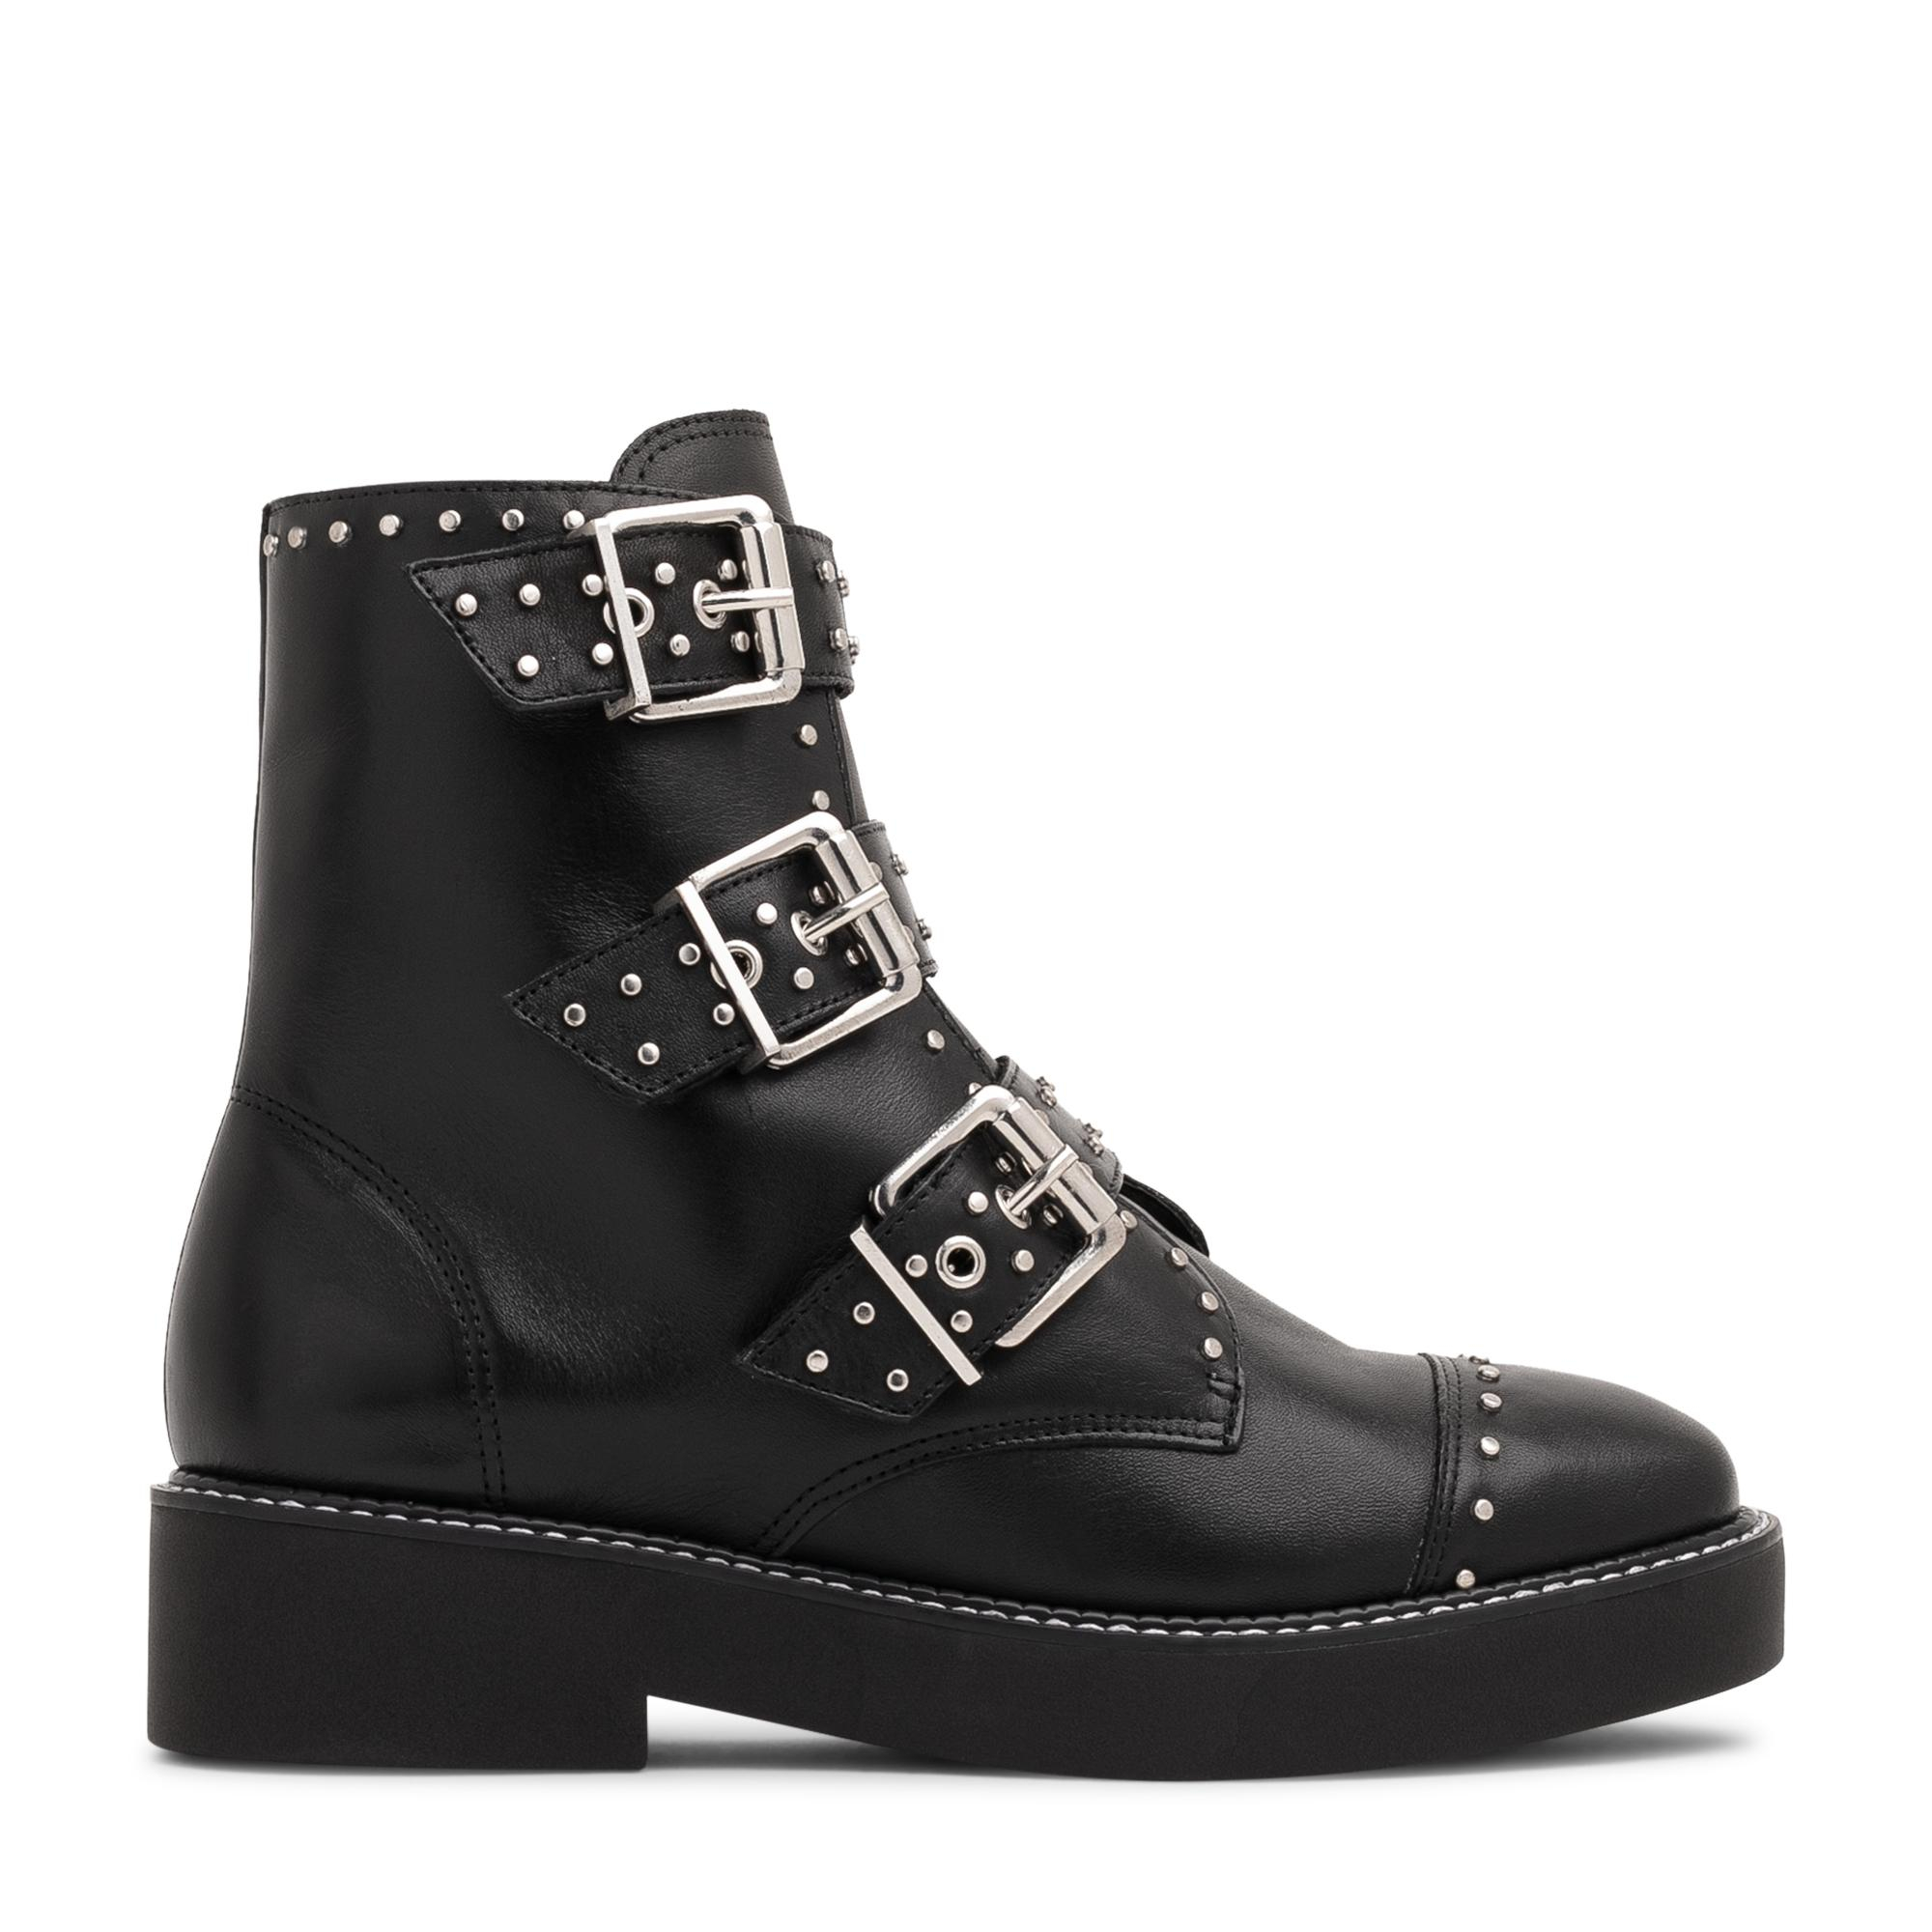 Caligas boots